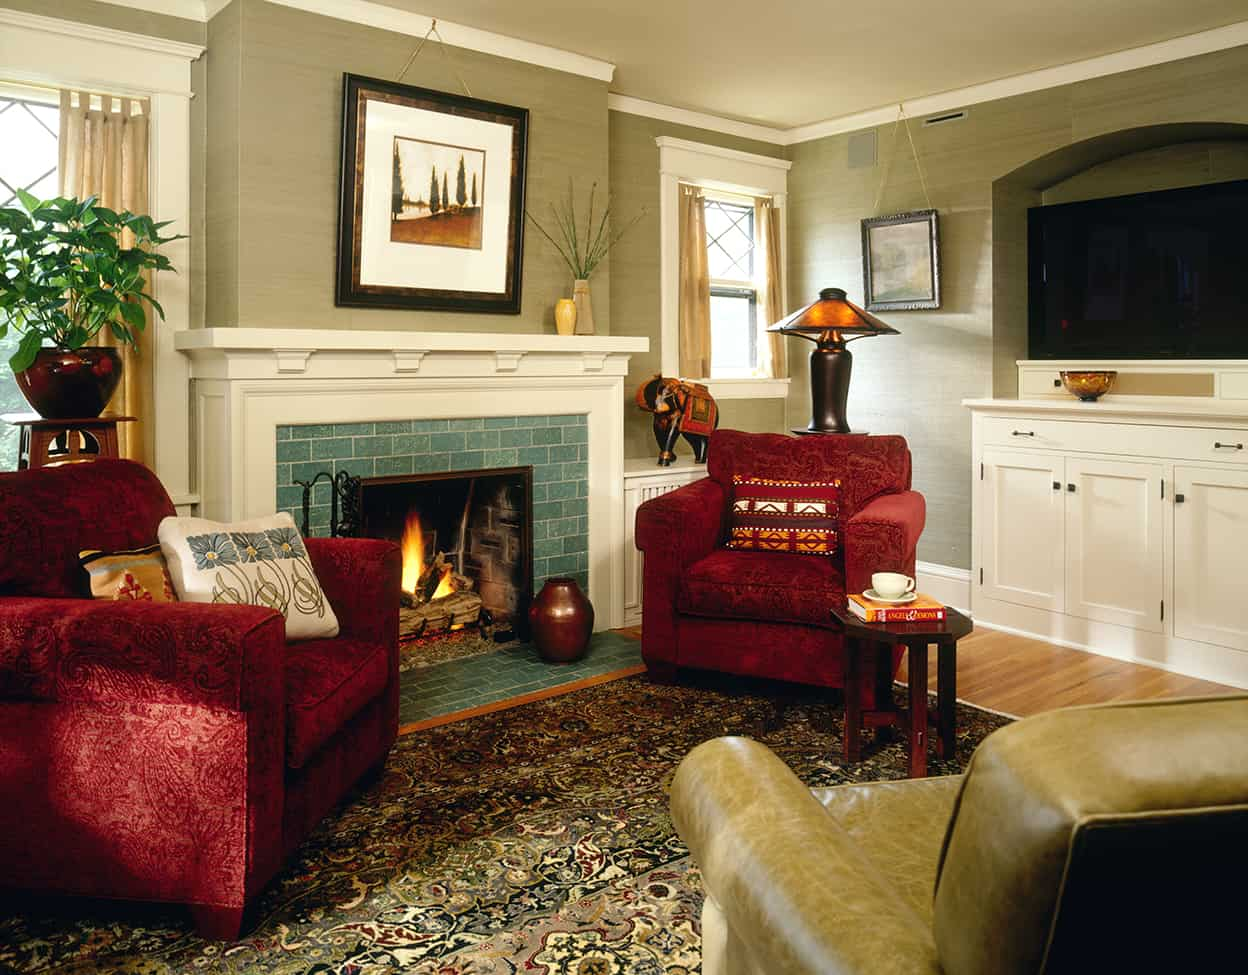 While the family room is a bit simpler than the formal living room, it's no less comfortable with its overstuffed furniture, fireplace, and warm color palate. The fabric-textured wallpaper, Persian carpet, and beautiful objet d'art also give it a quiet elegance.